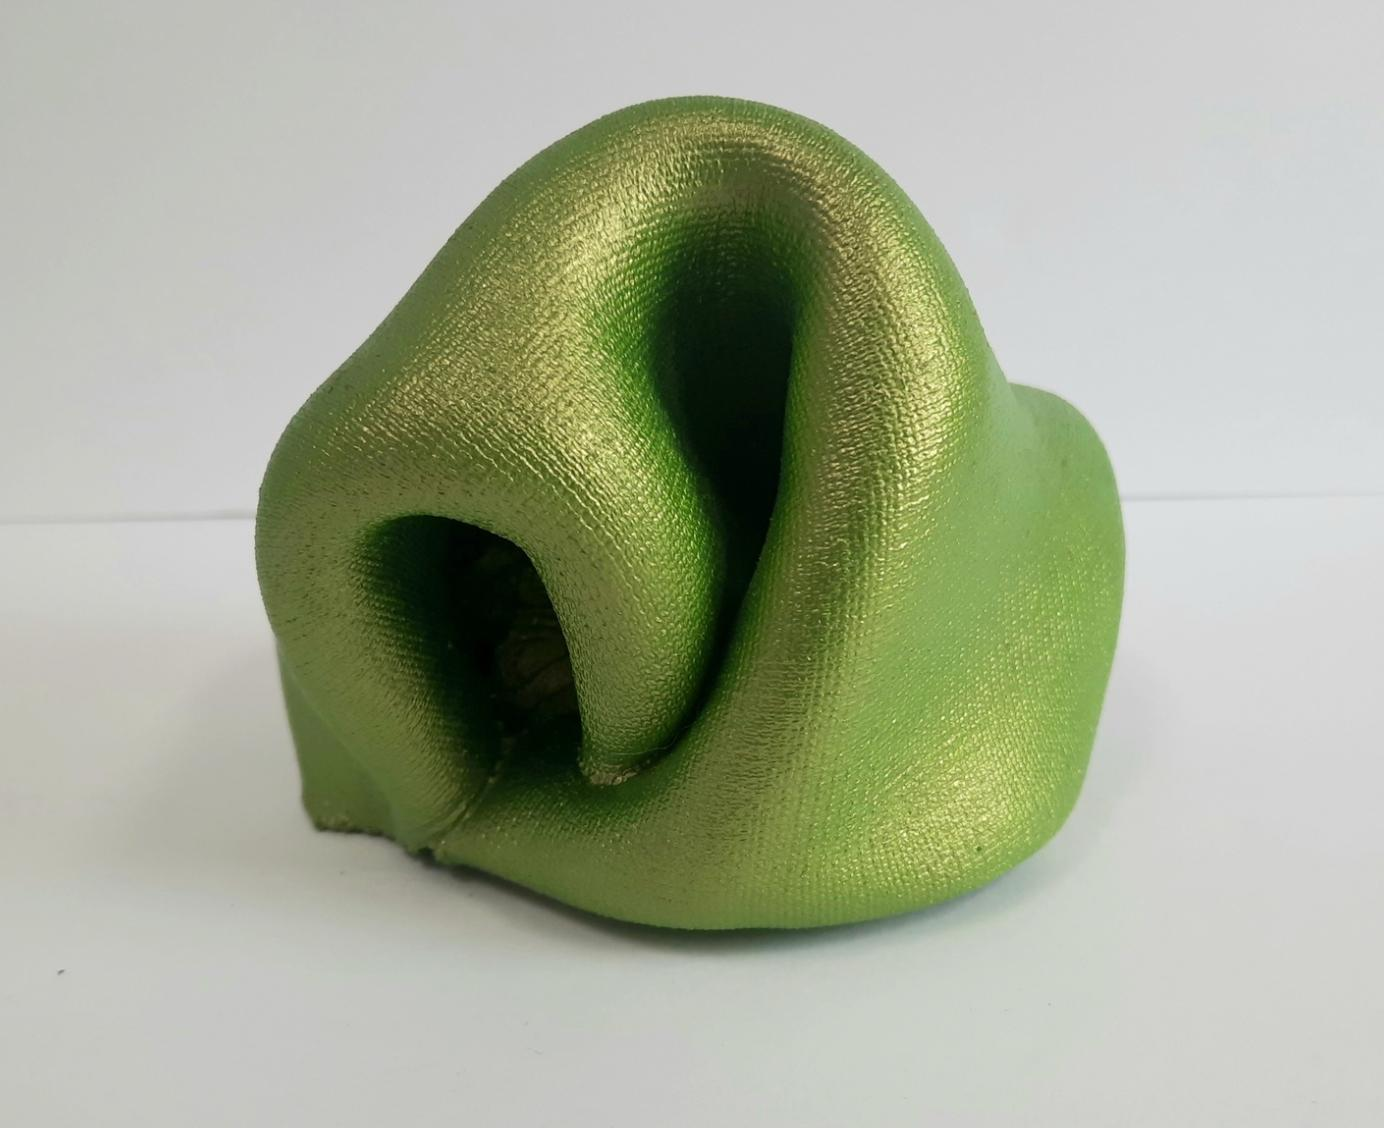 Sinuosity mini in Absinthe (pop green metallic smooth small sculpture abstract)